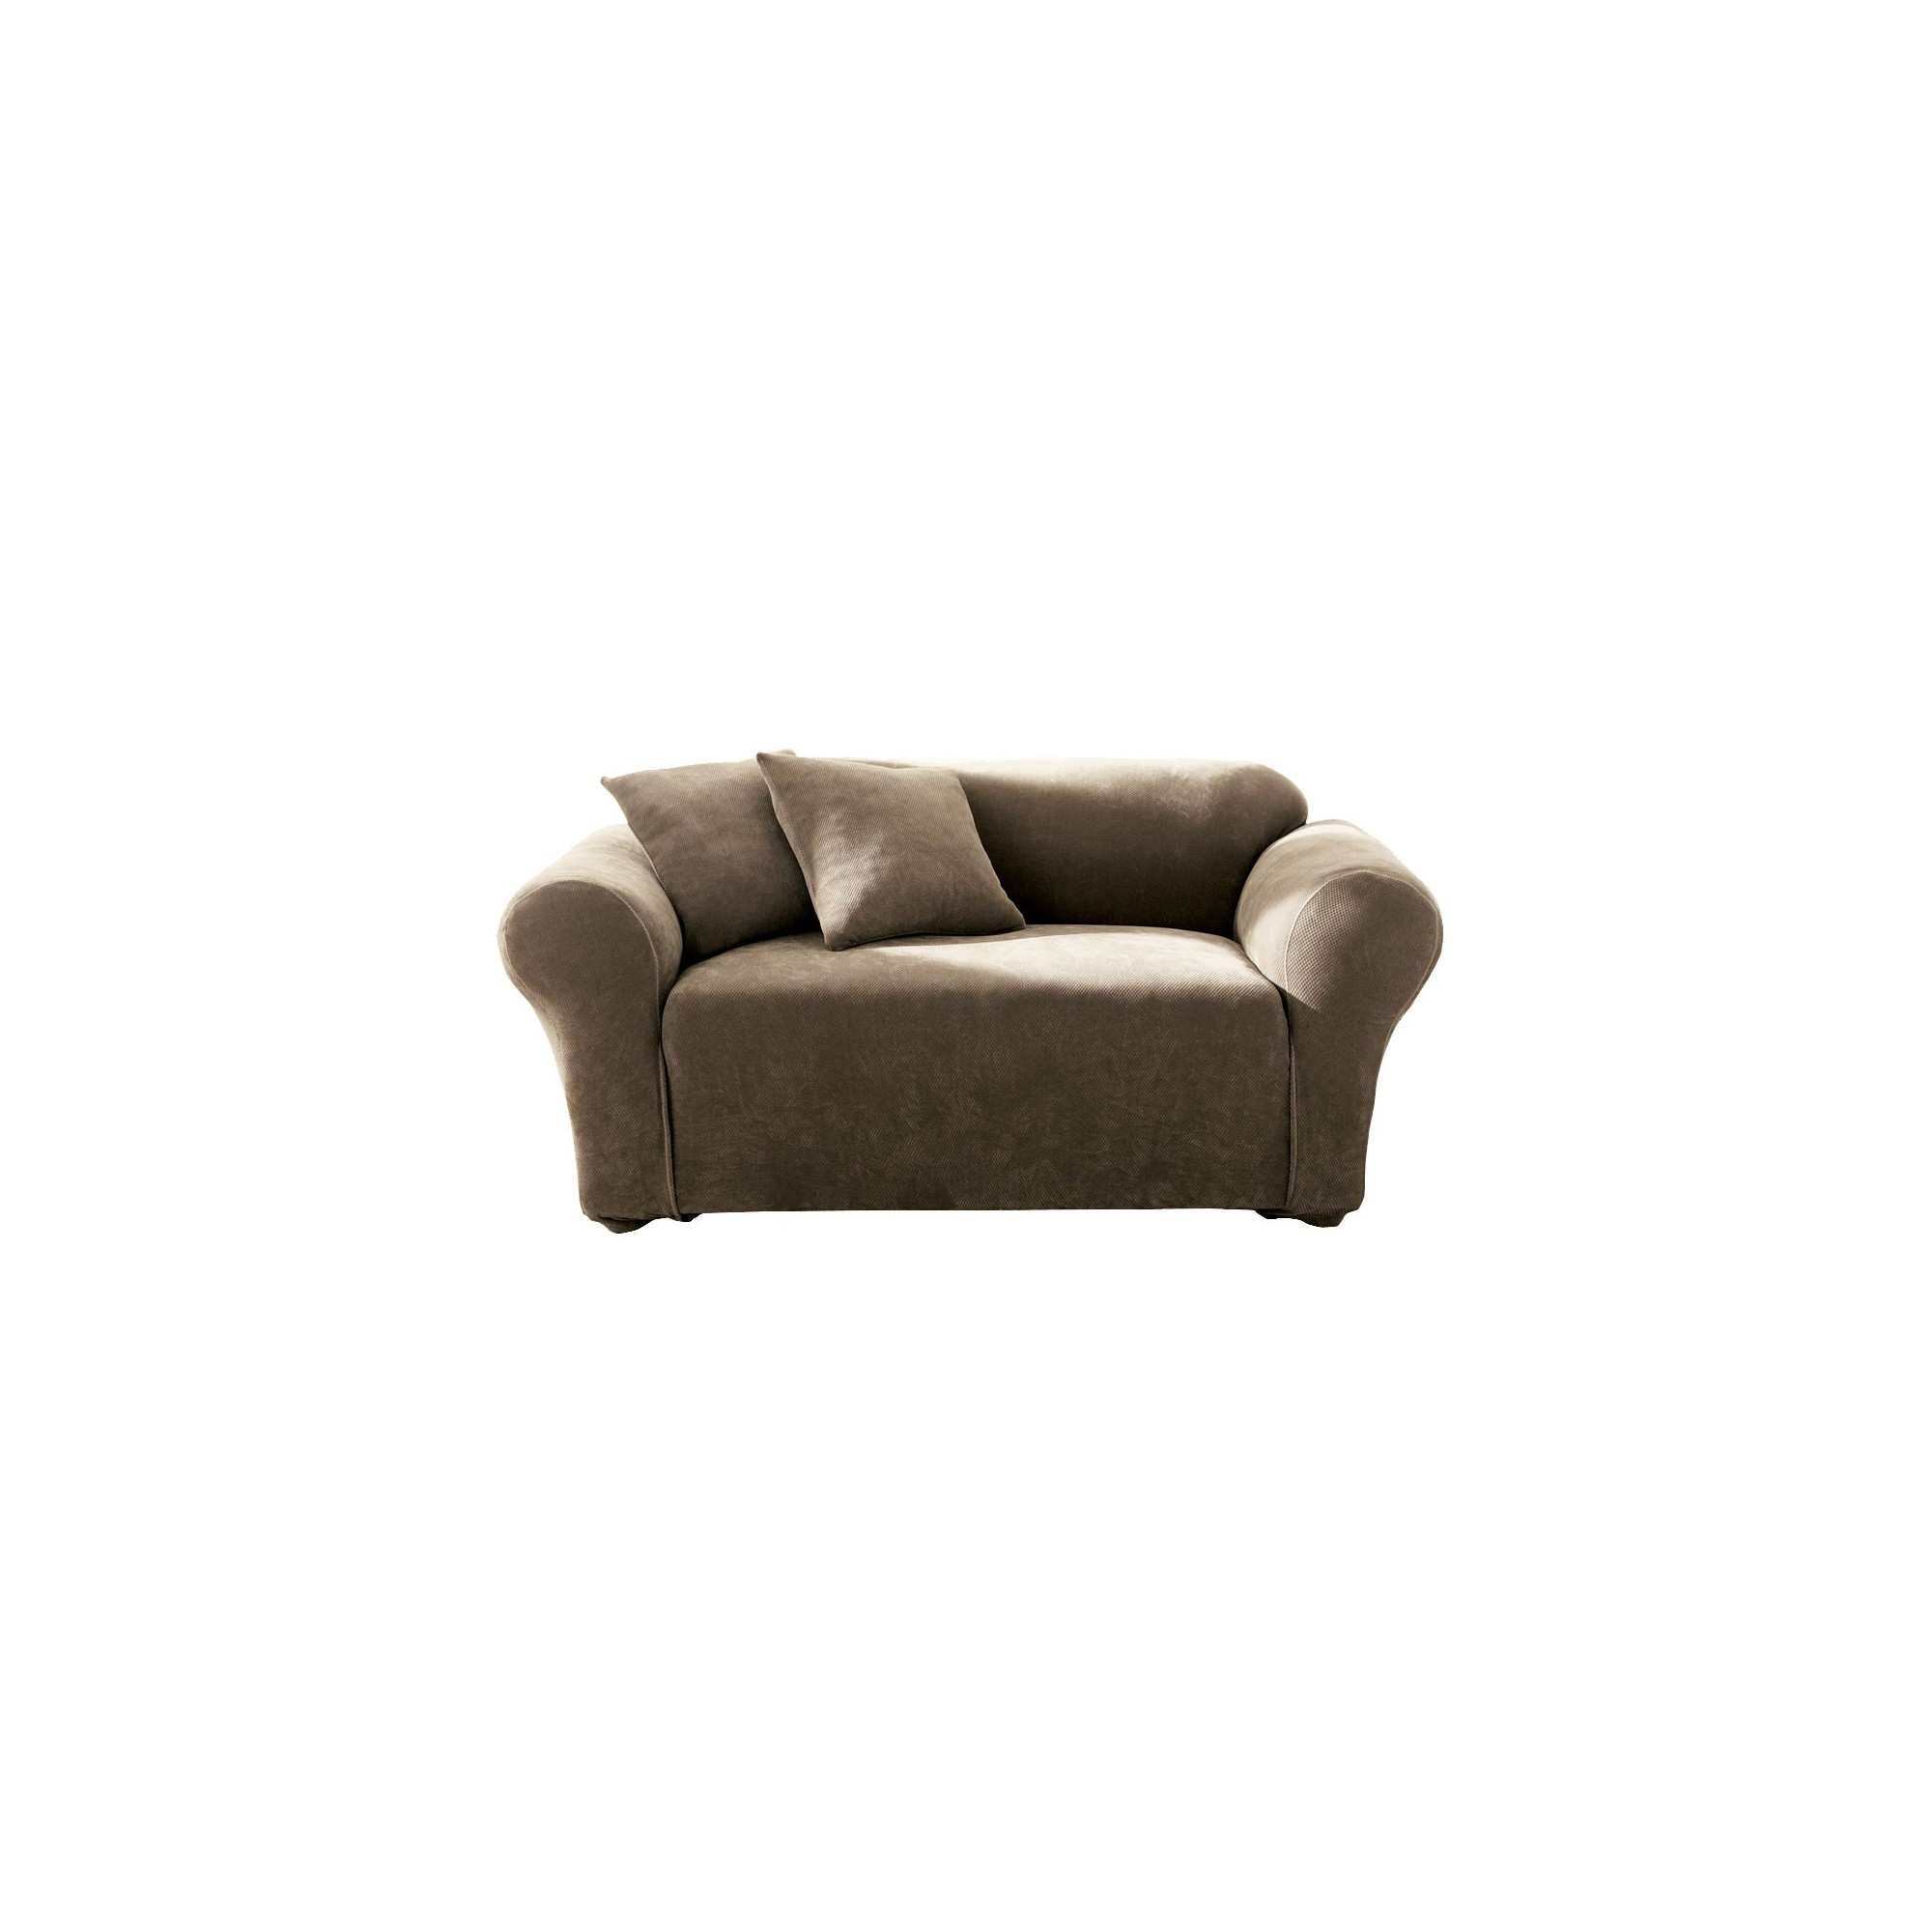 Taupe Stretch Pique Sofa Slipcover - Sure Fit, Brown